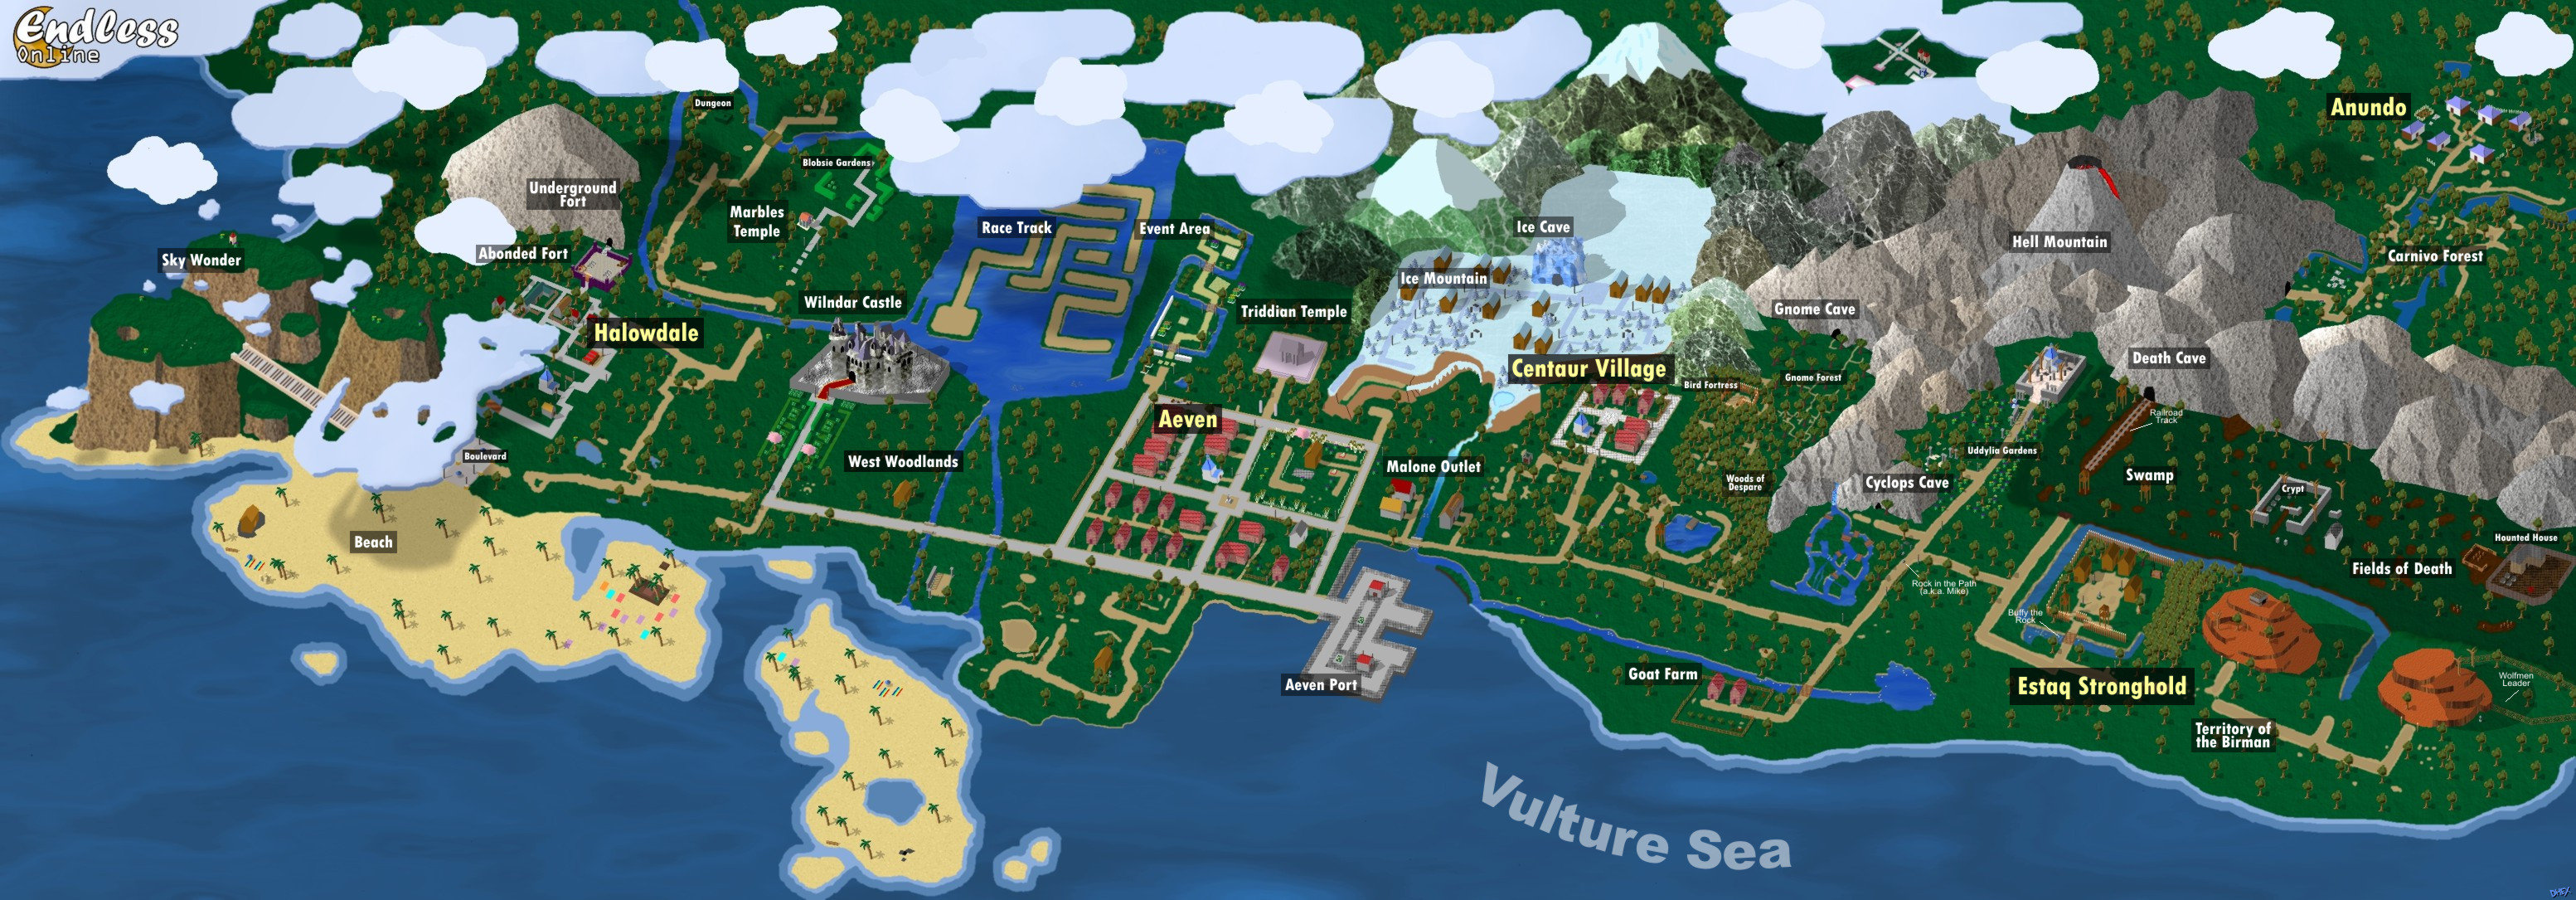 Map endless online wiki fandom powered by wikia eomapbig1oi4 beautified map gumiabroncs Choice Image